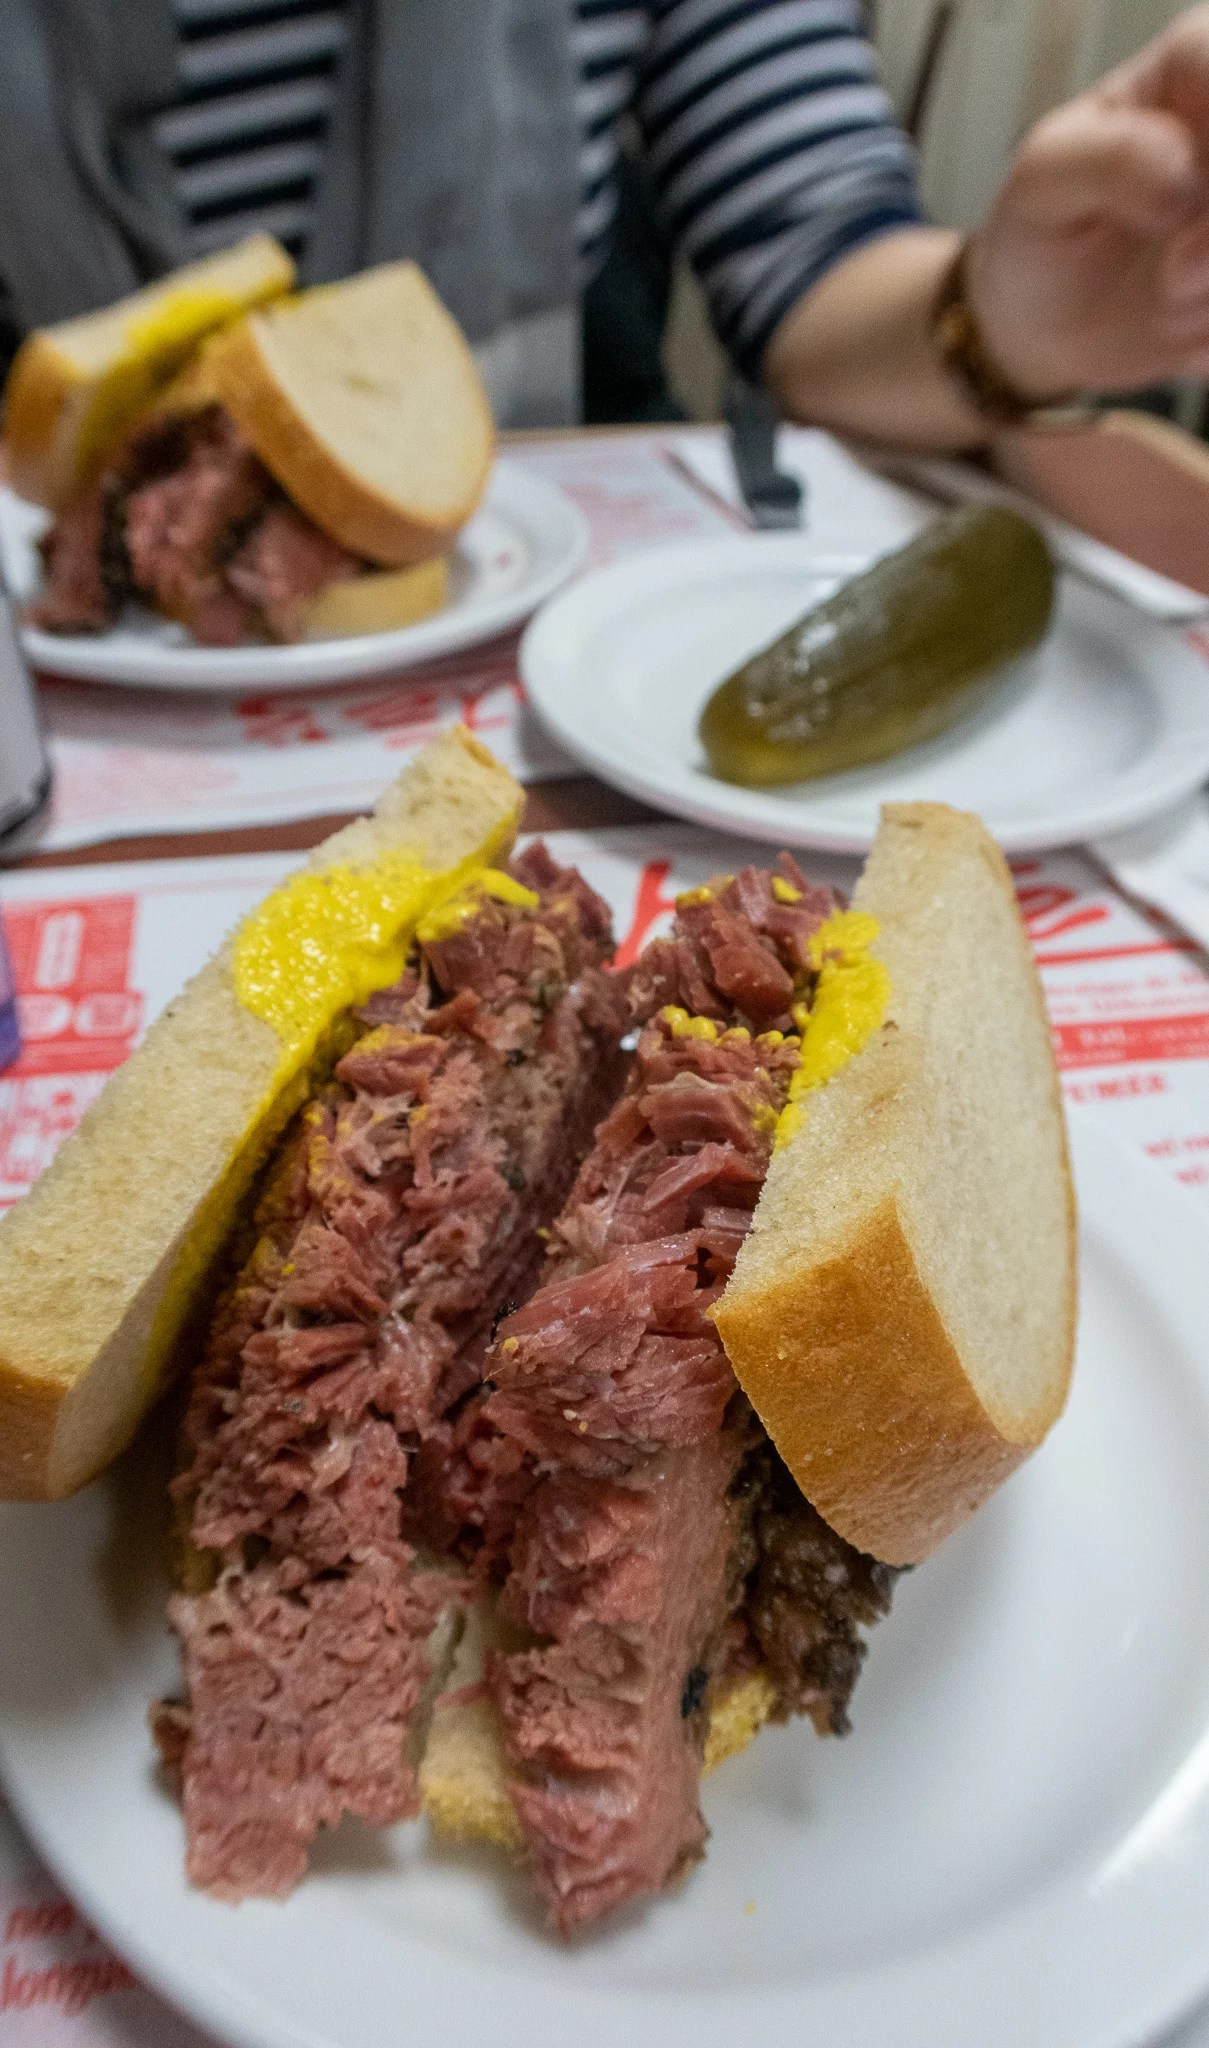 Smoked Meat sandwich from Schwartz